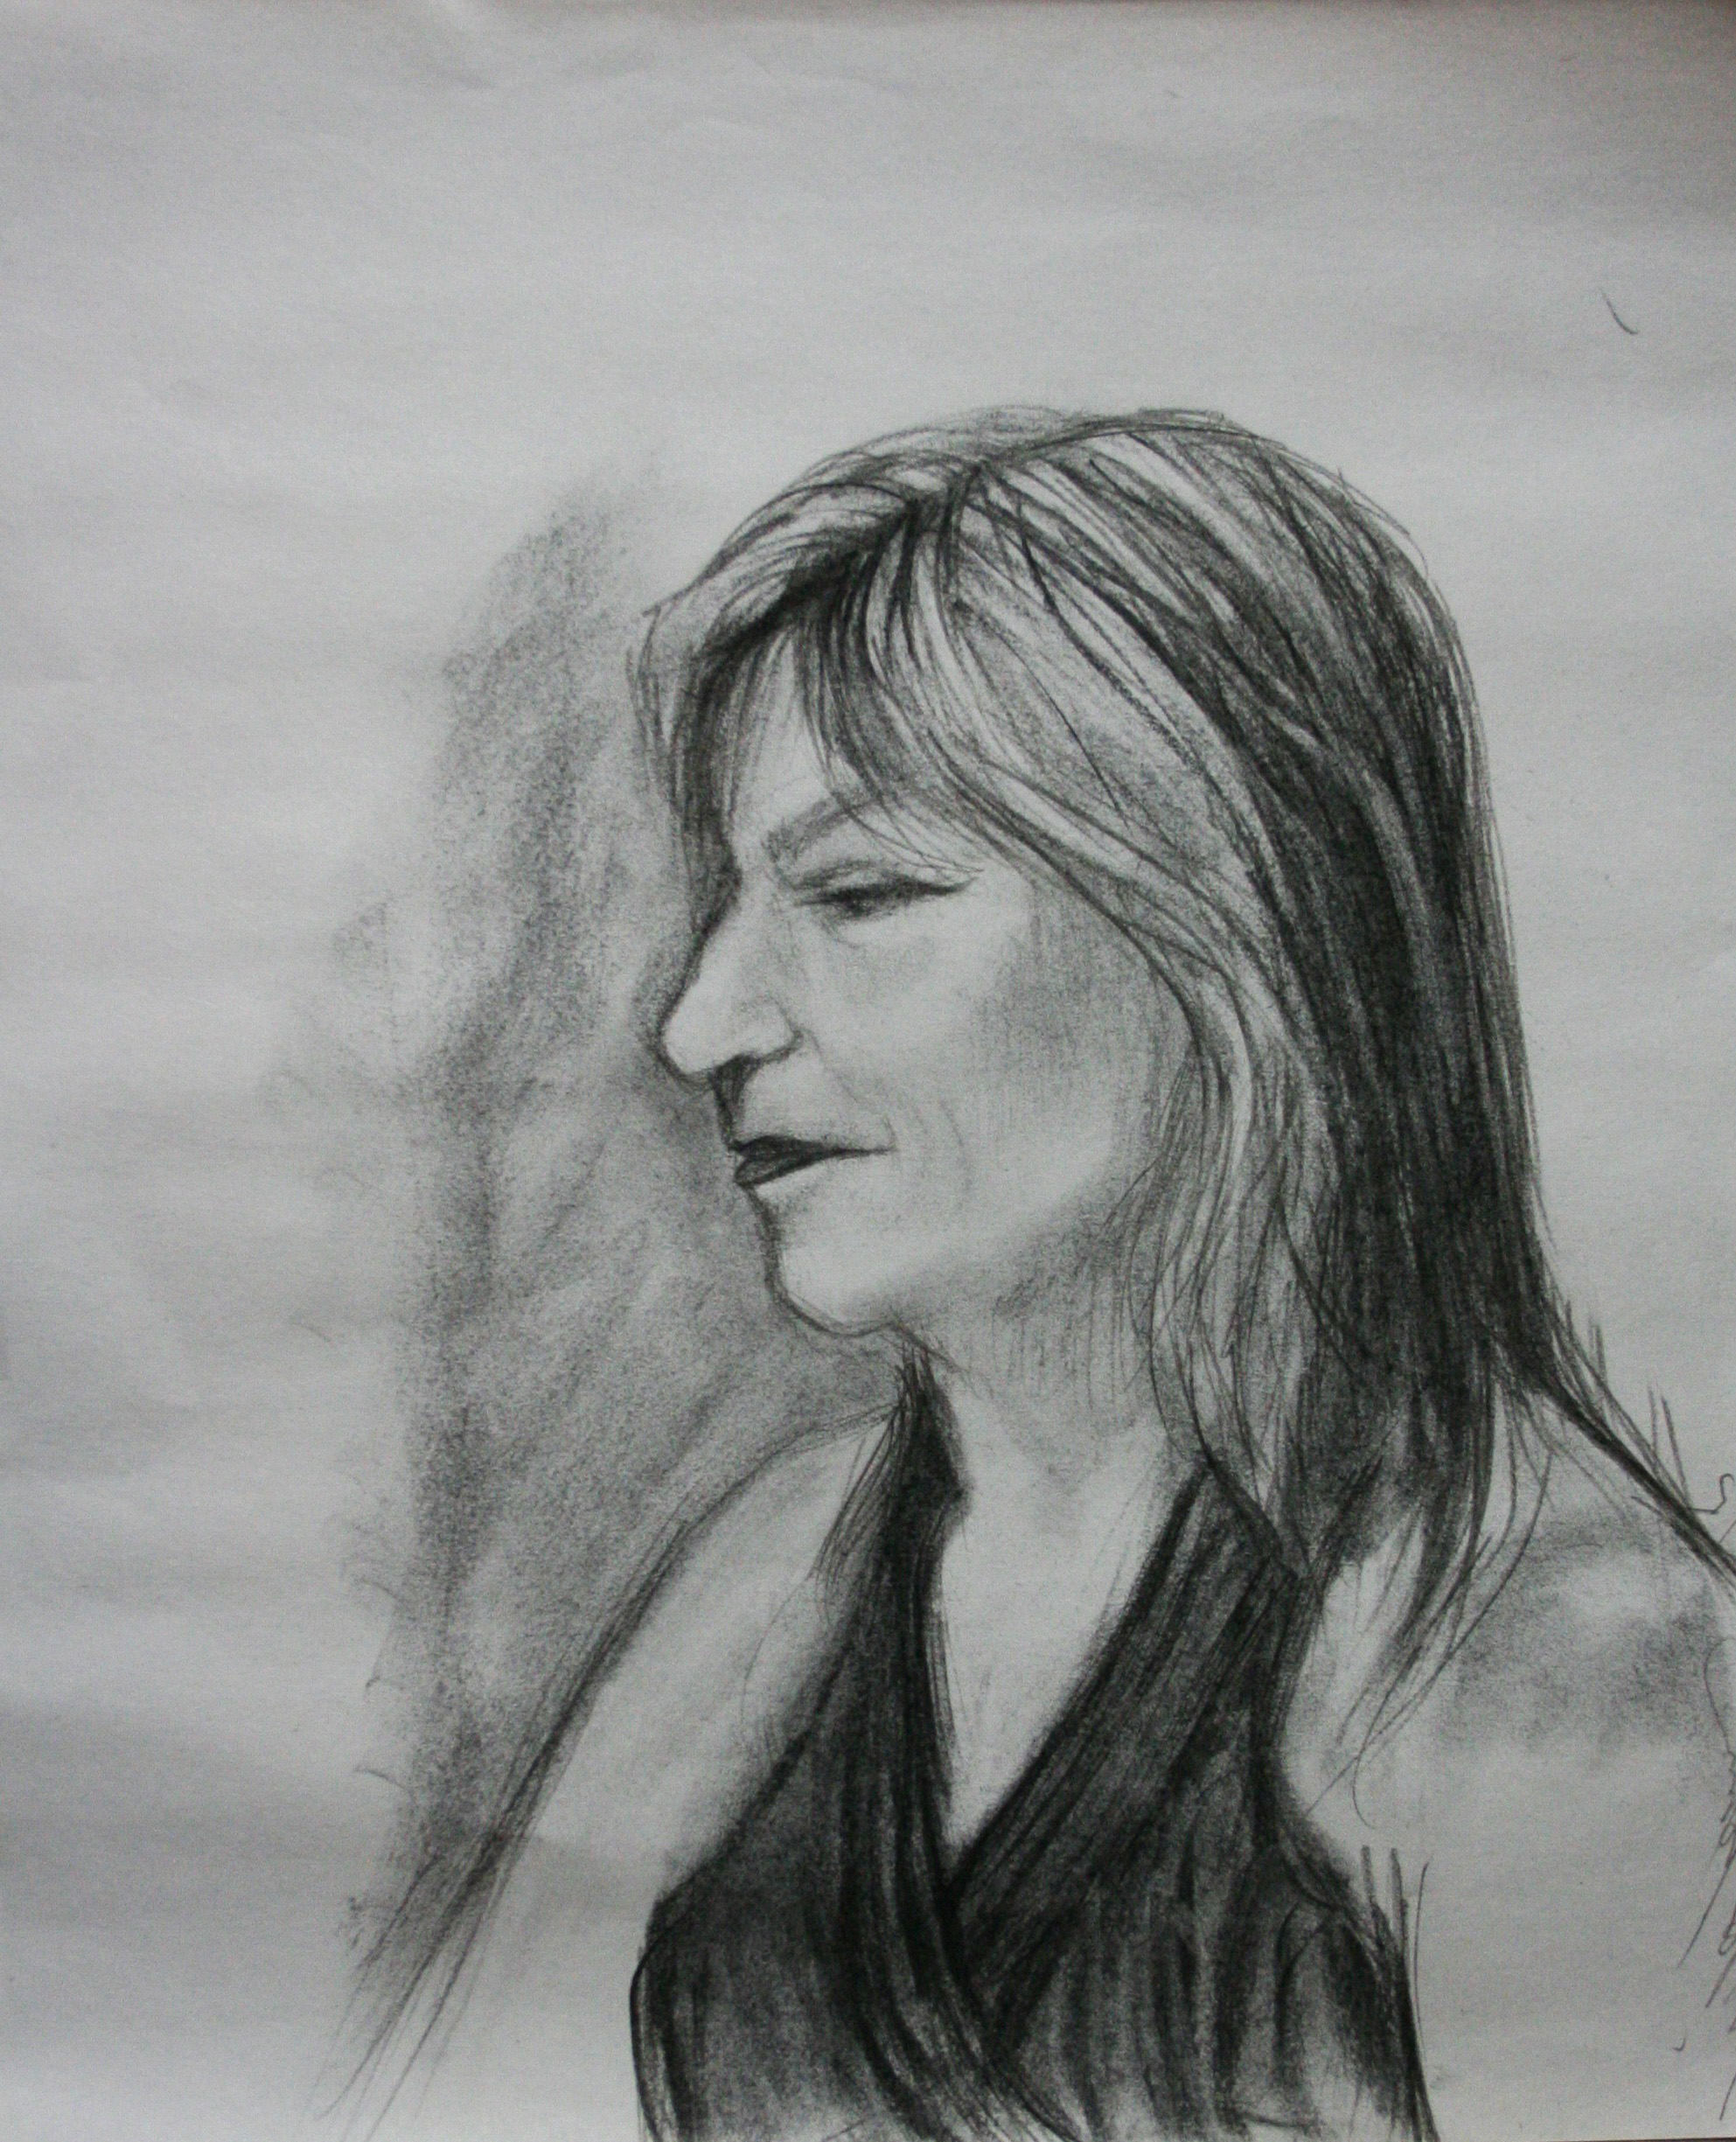 Linda Herman did this hour and a half drawing.